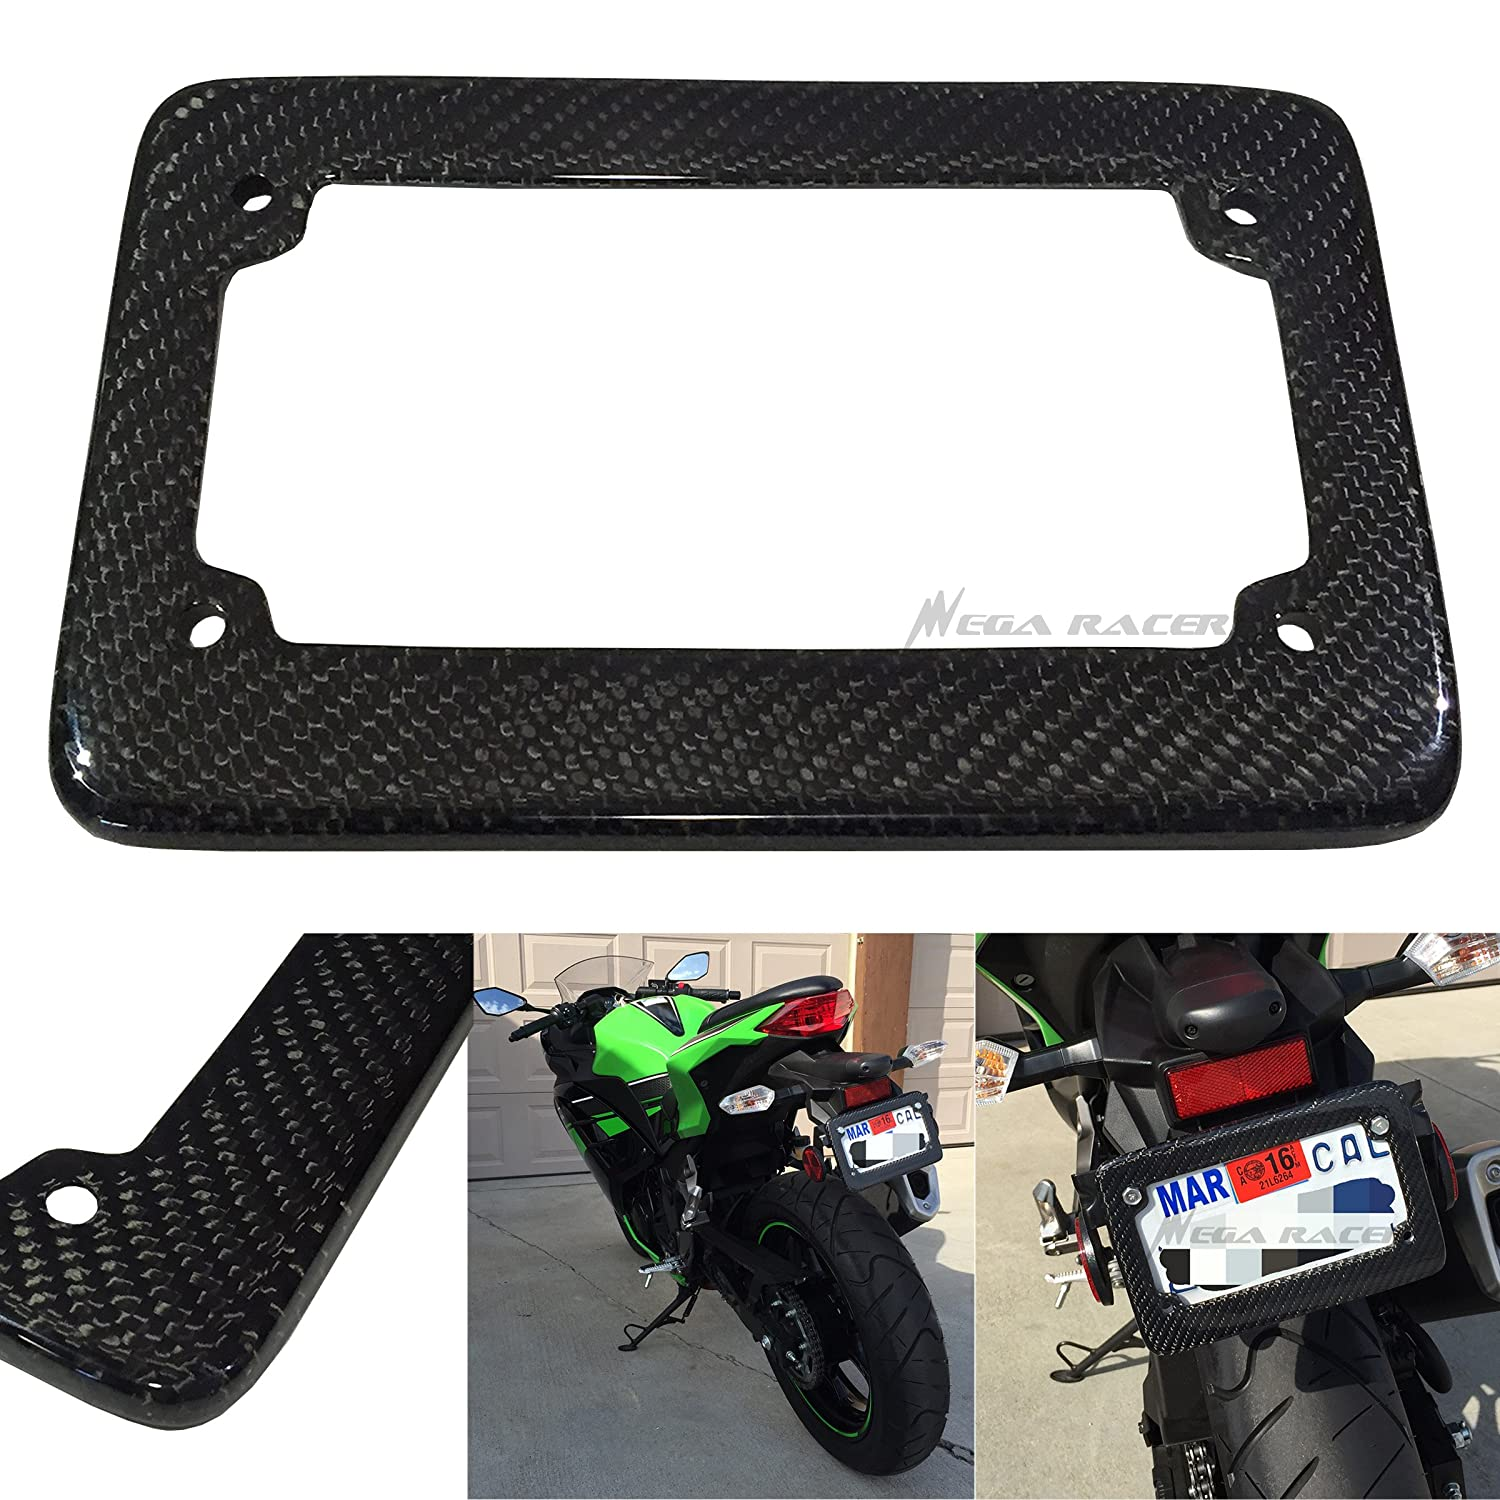 Universal 100% Carbon Fiber Motorcycle Rear License Plate Frame Holder Black 3D Twill Weave Tag USA Scooter Chopper Bike Mega Racer